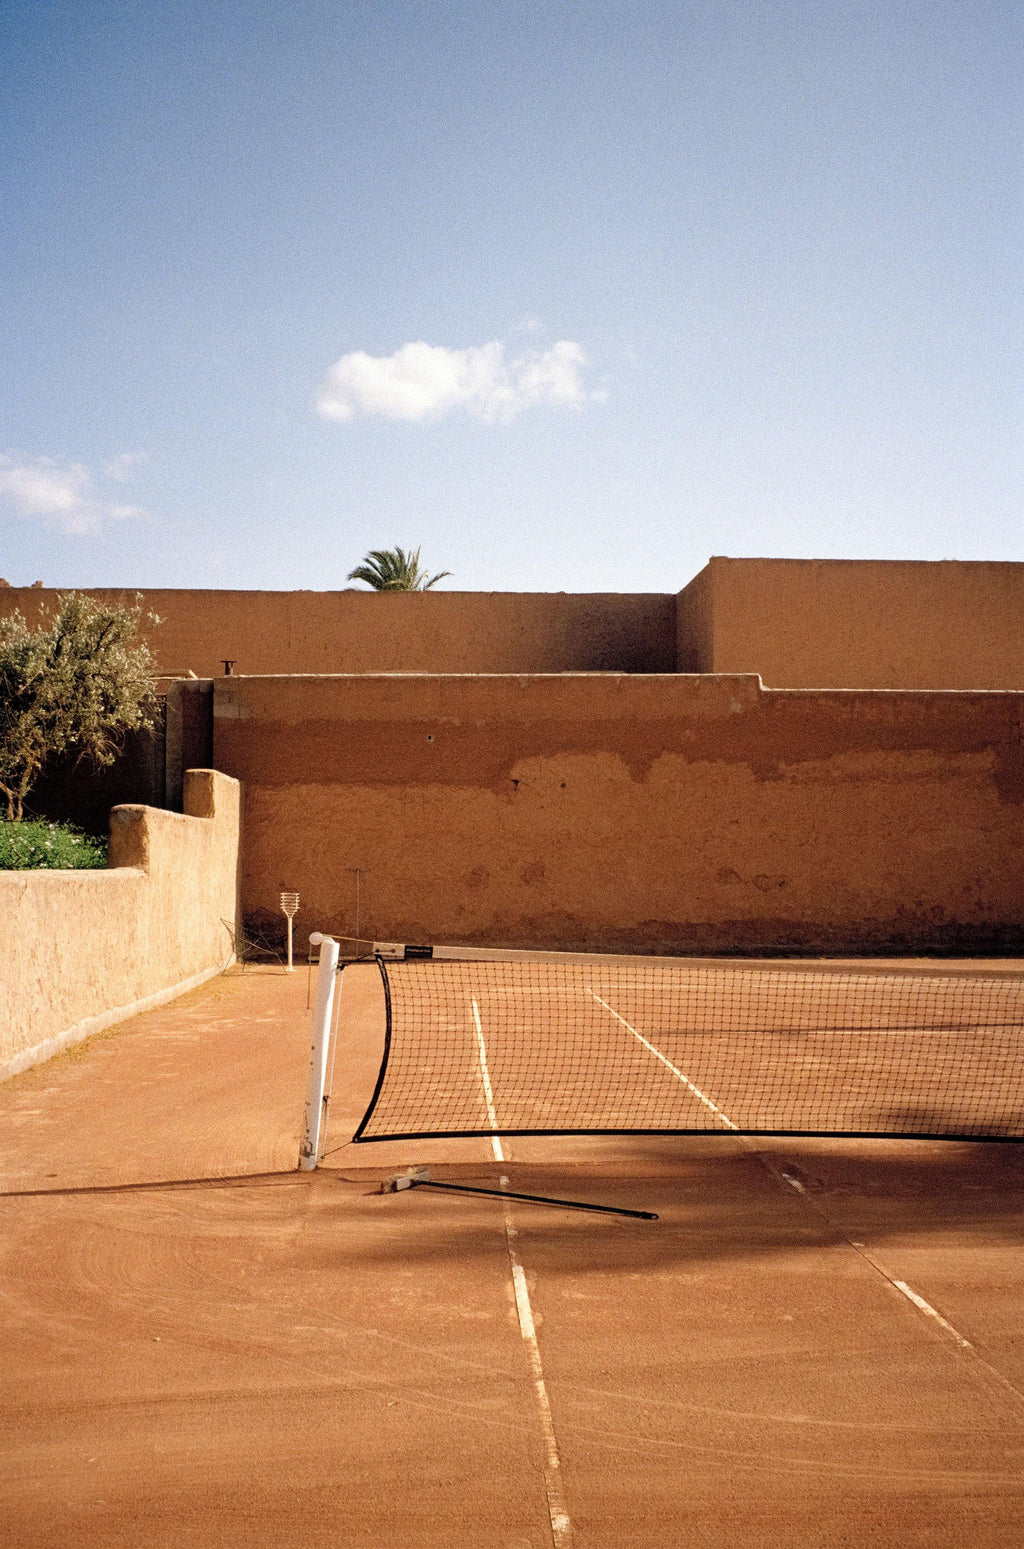 ANNA PIHAN TENNIS IN MARRAKECH FILM FINE ART PRINT